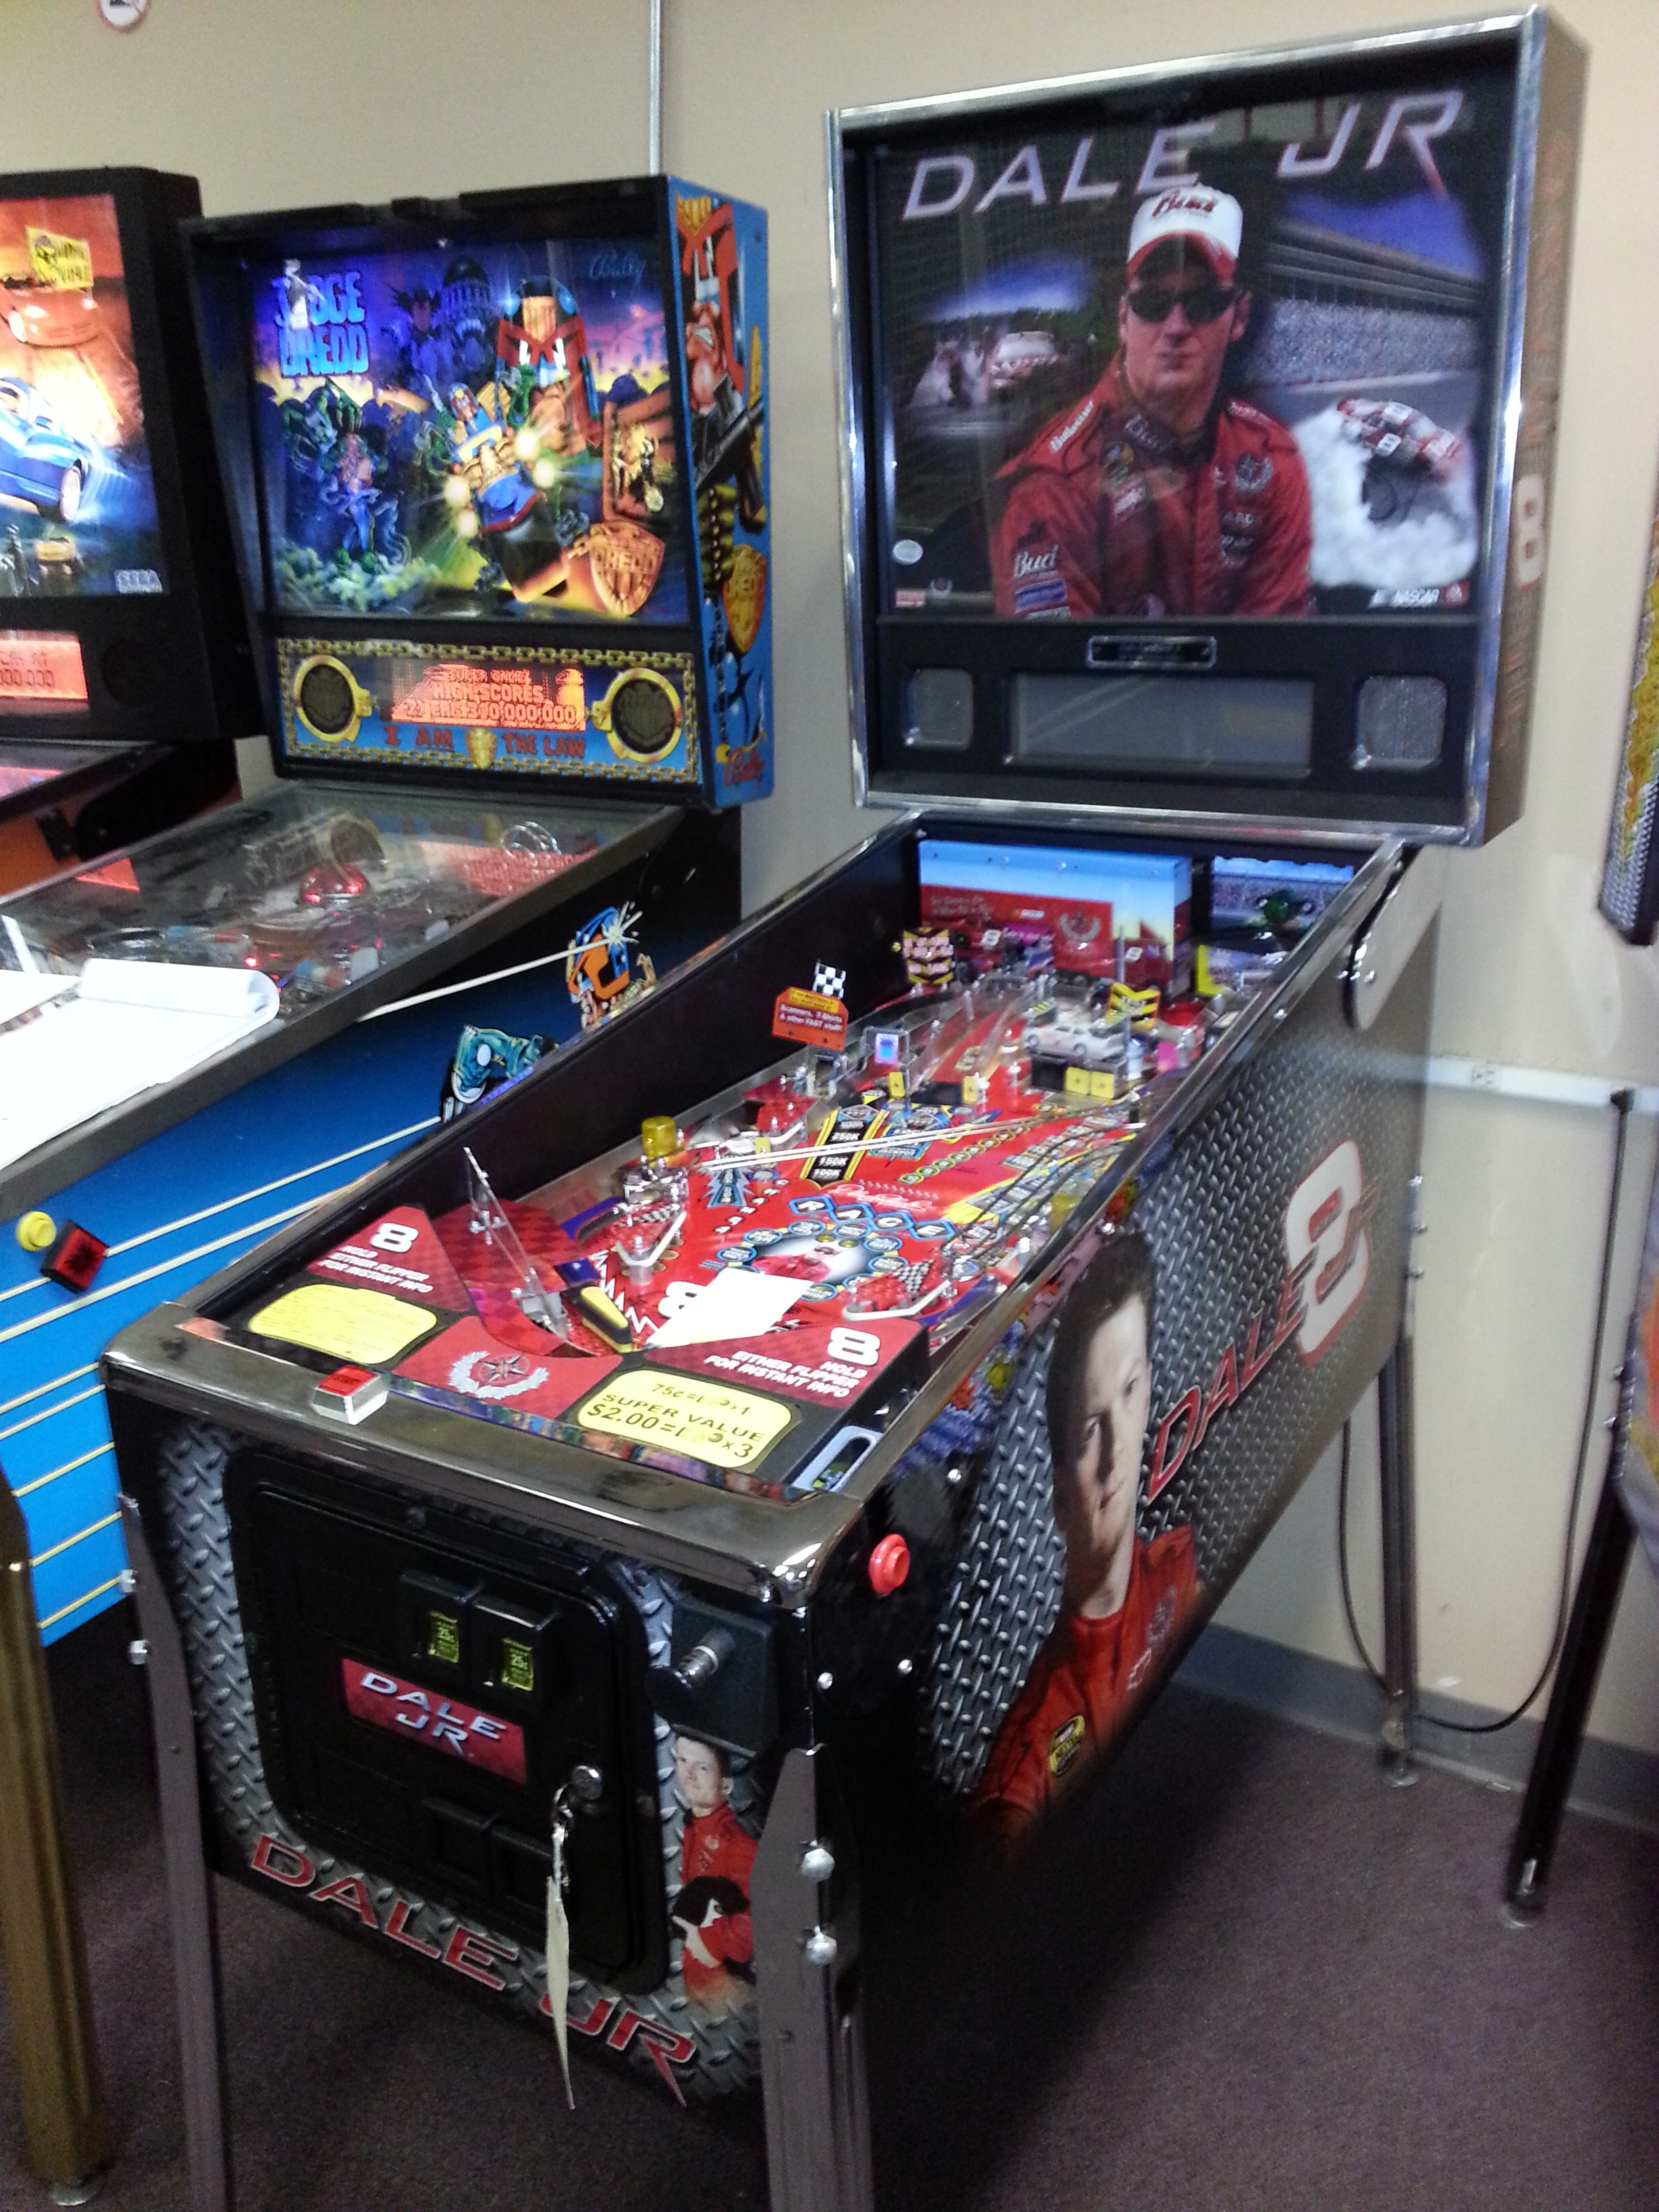 NASCAR DALE EARNHARDT JR 8 Pinball Machine Game for sale by Stern  LIMITED EDITION  FREE